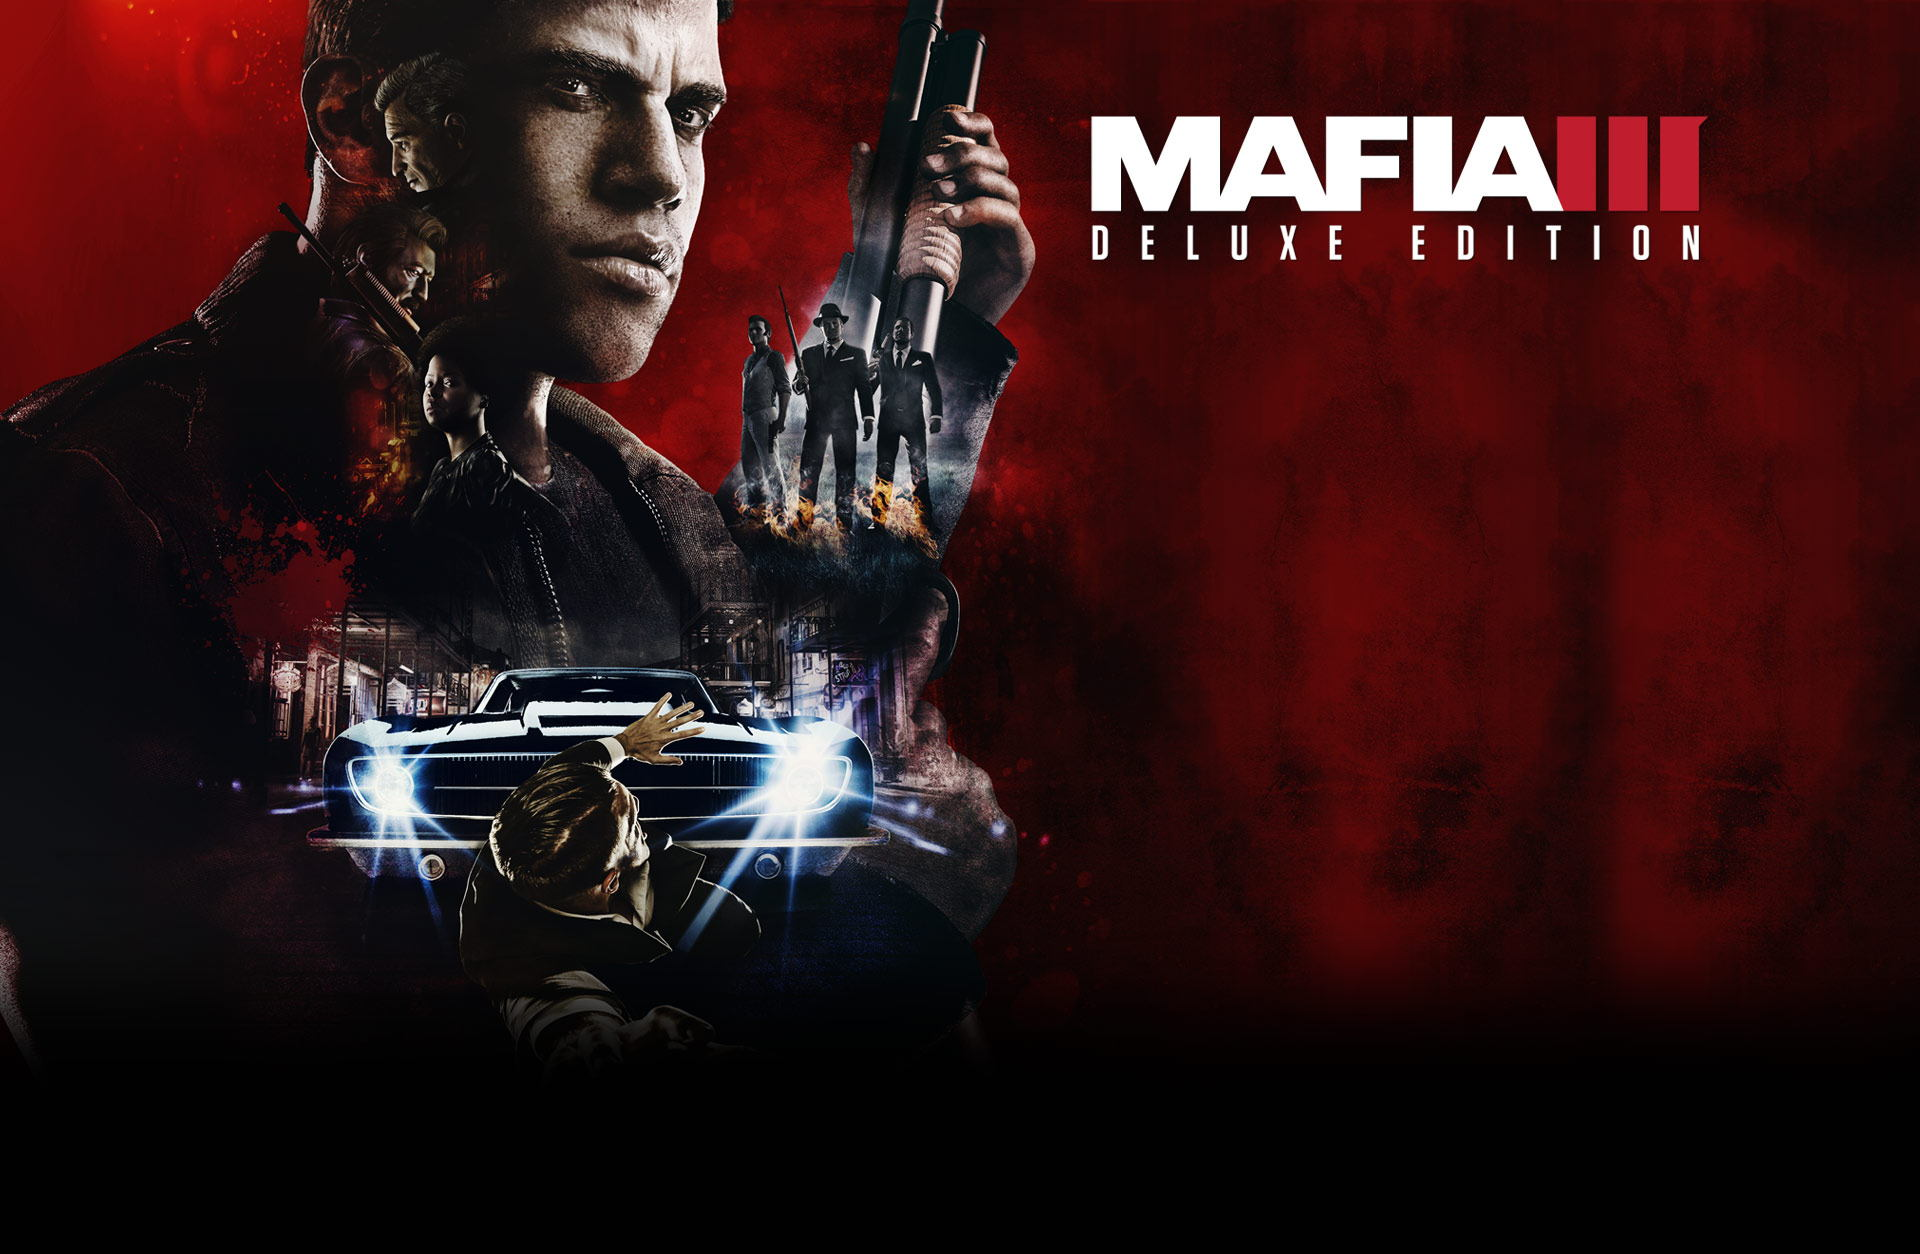 Mafia III Digital Deluxe (Steam Gift RU)